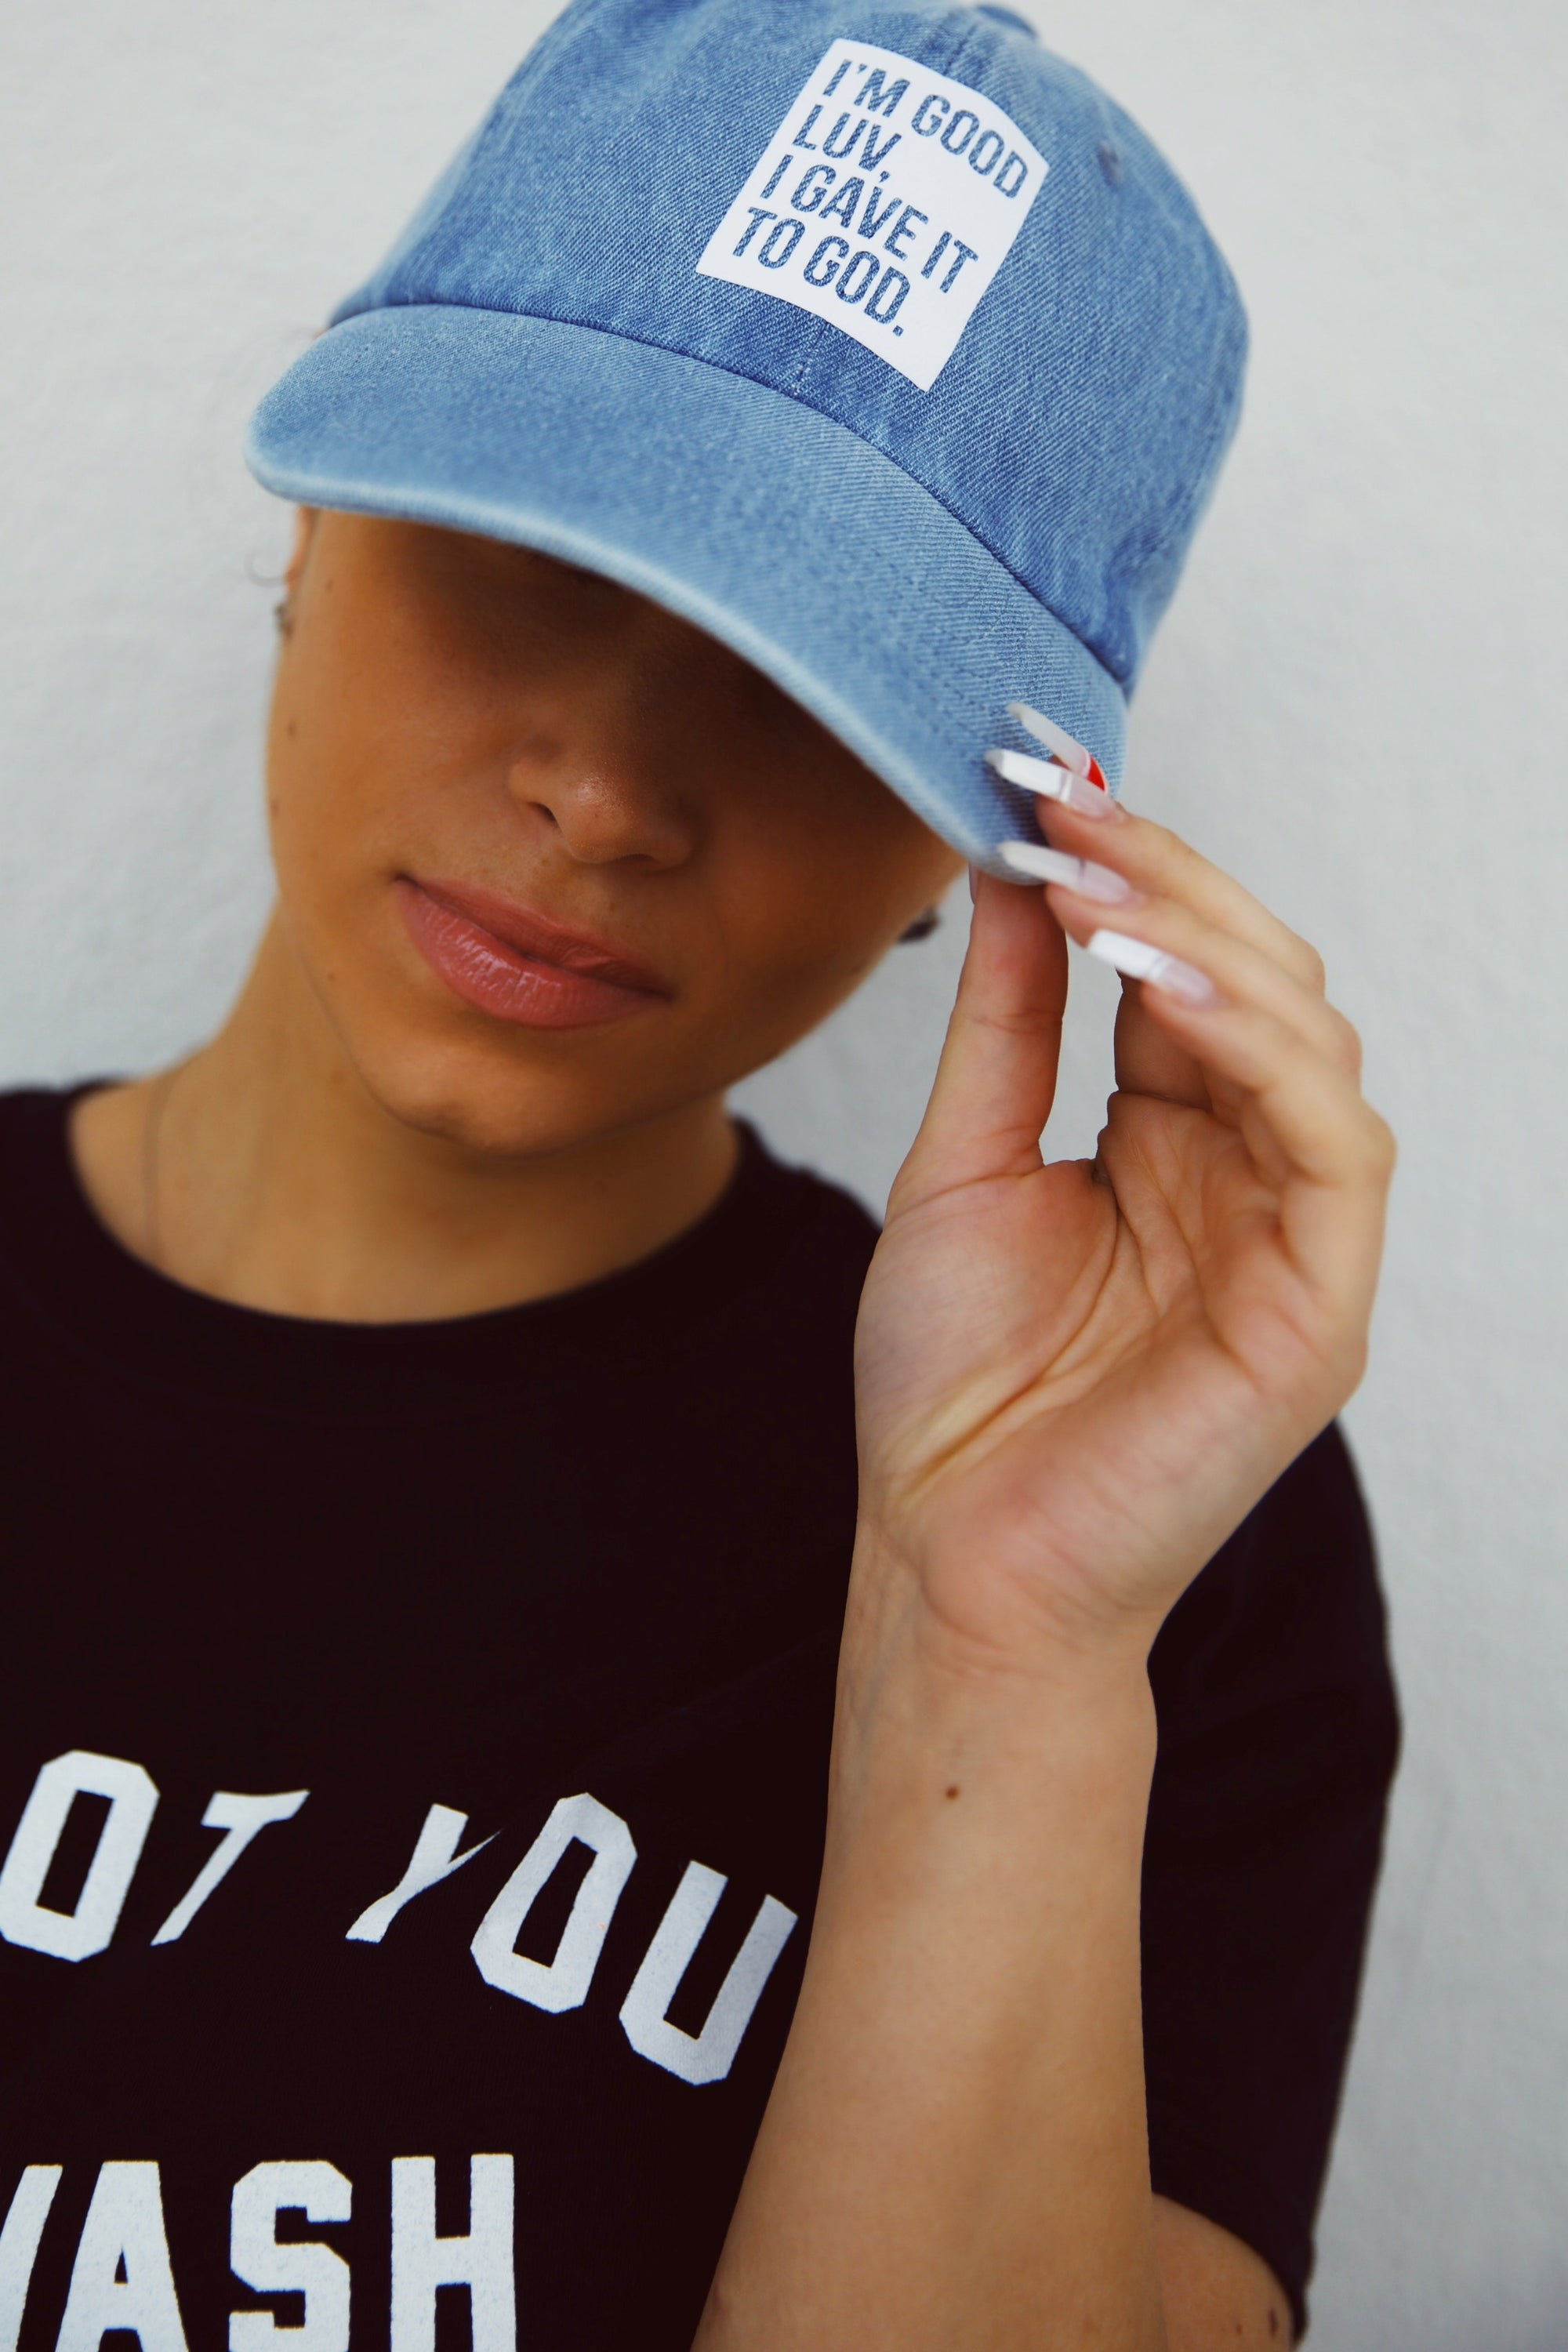 """I'M GOOD LUV"" LIGHT DENIM HAT (WHITE BOX)"